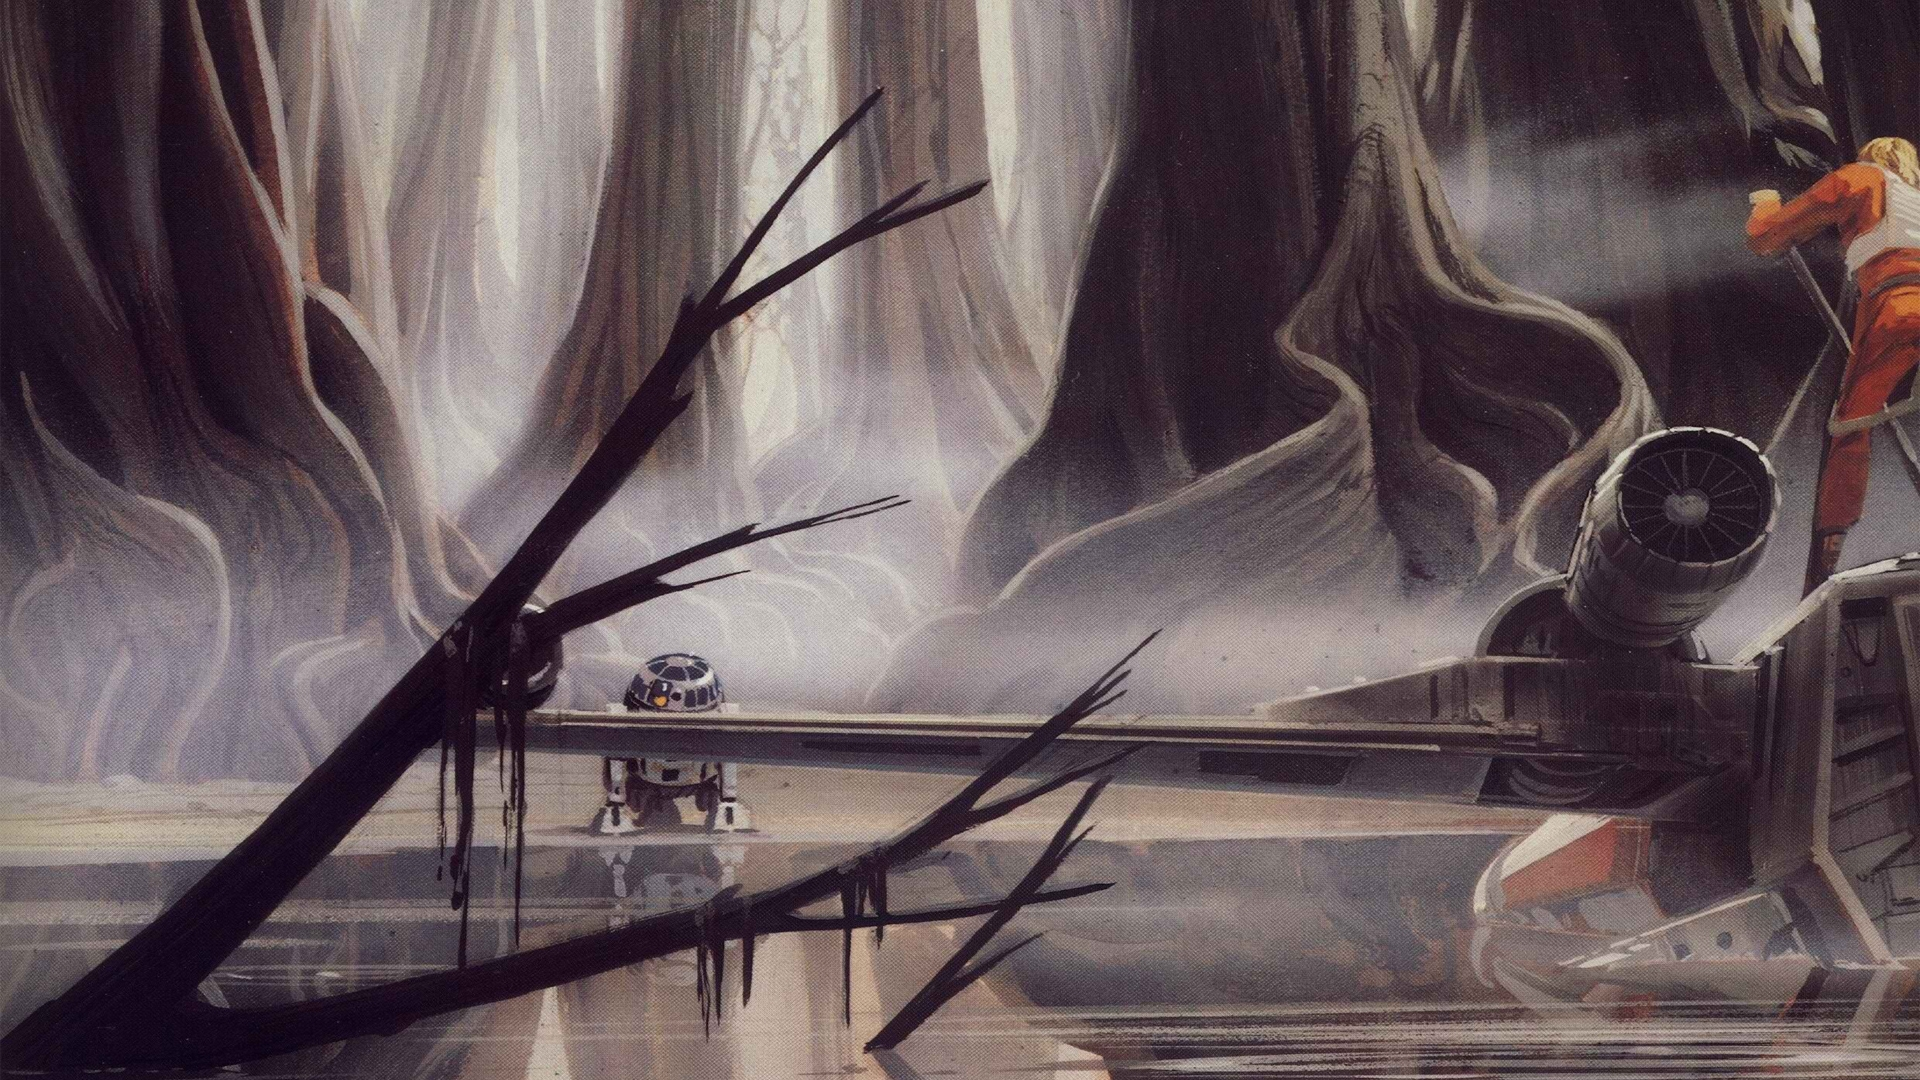 star wars r2d2 luke skywalker xwing ralph mcquarrie